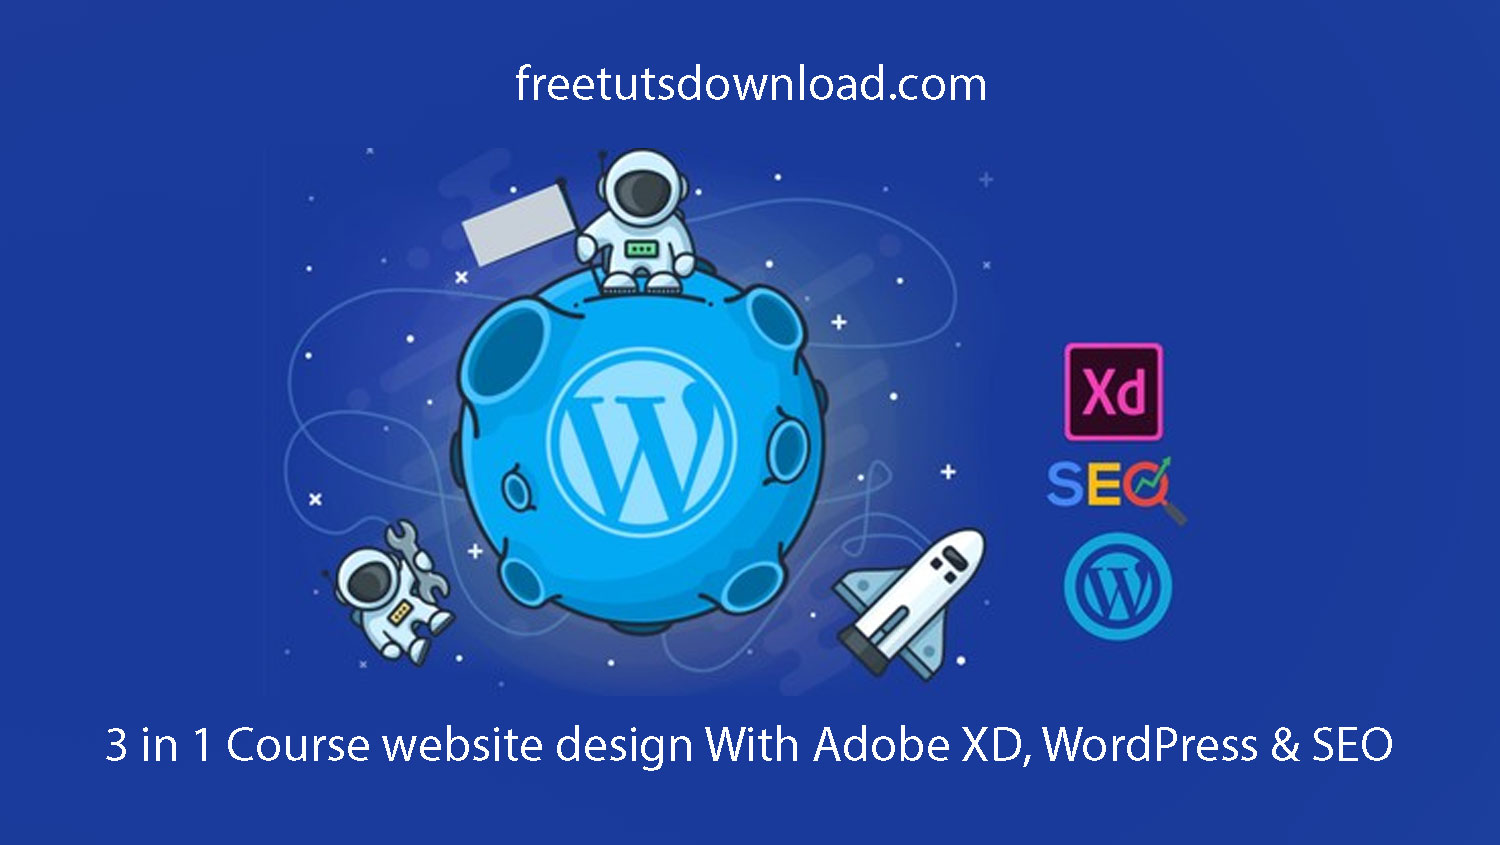 3 in 1 Course website design With Adobe XD, WordPress & SEO